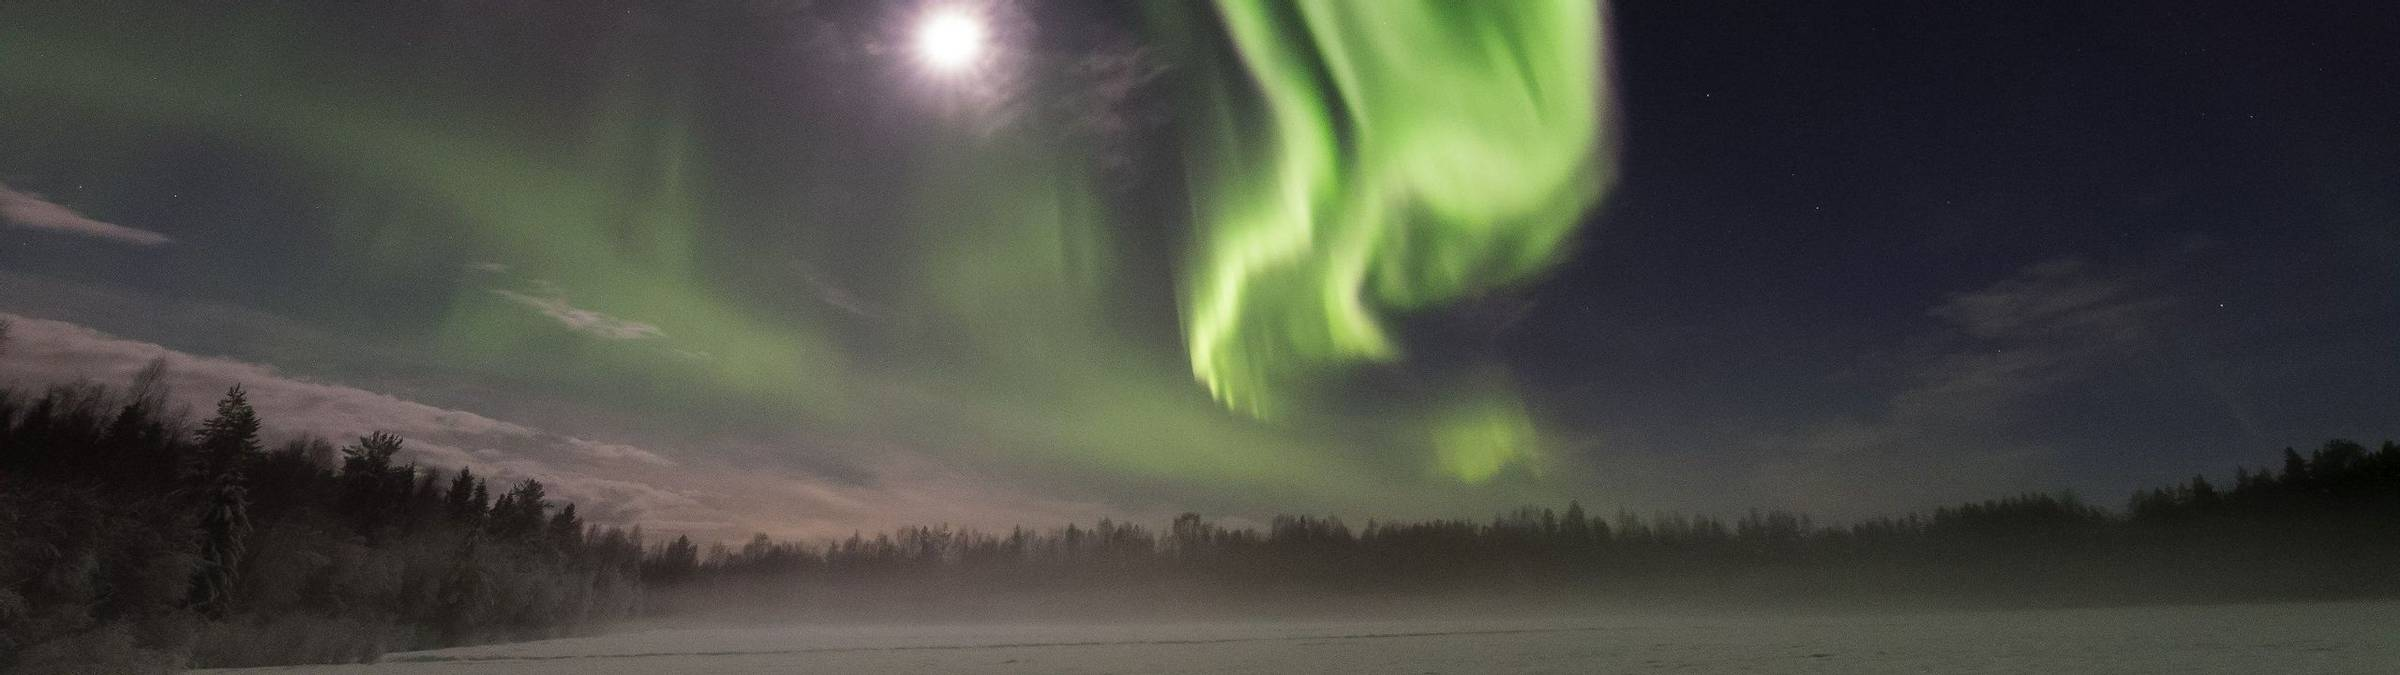 2015, credit Tomas Jönsson, December, December 2015, Lulea, Northern Lights